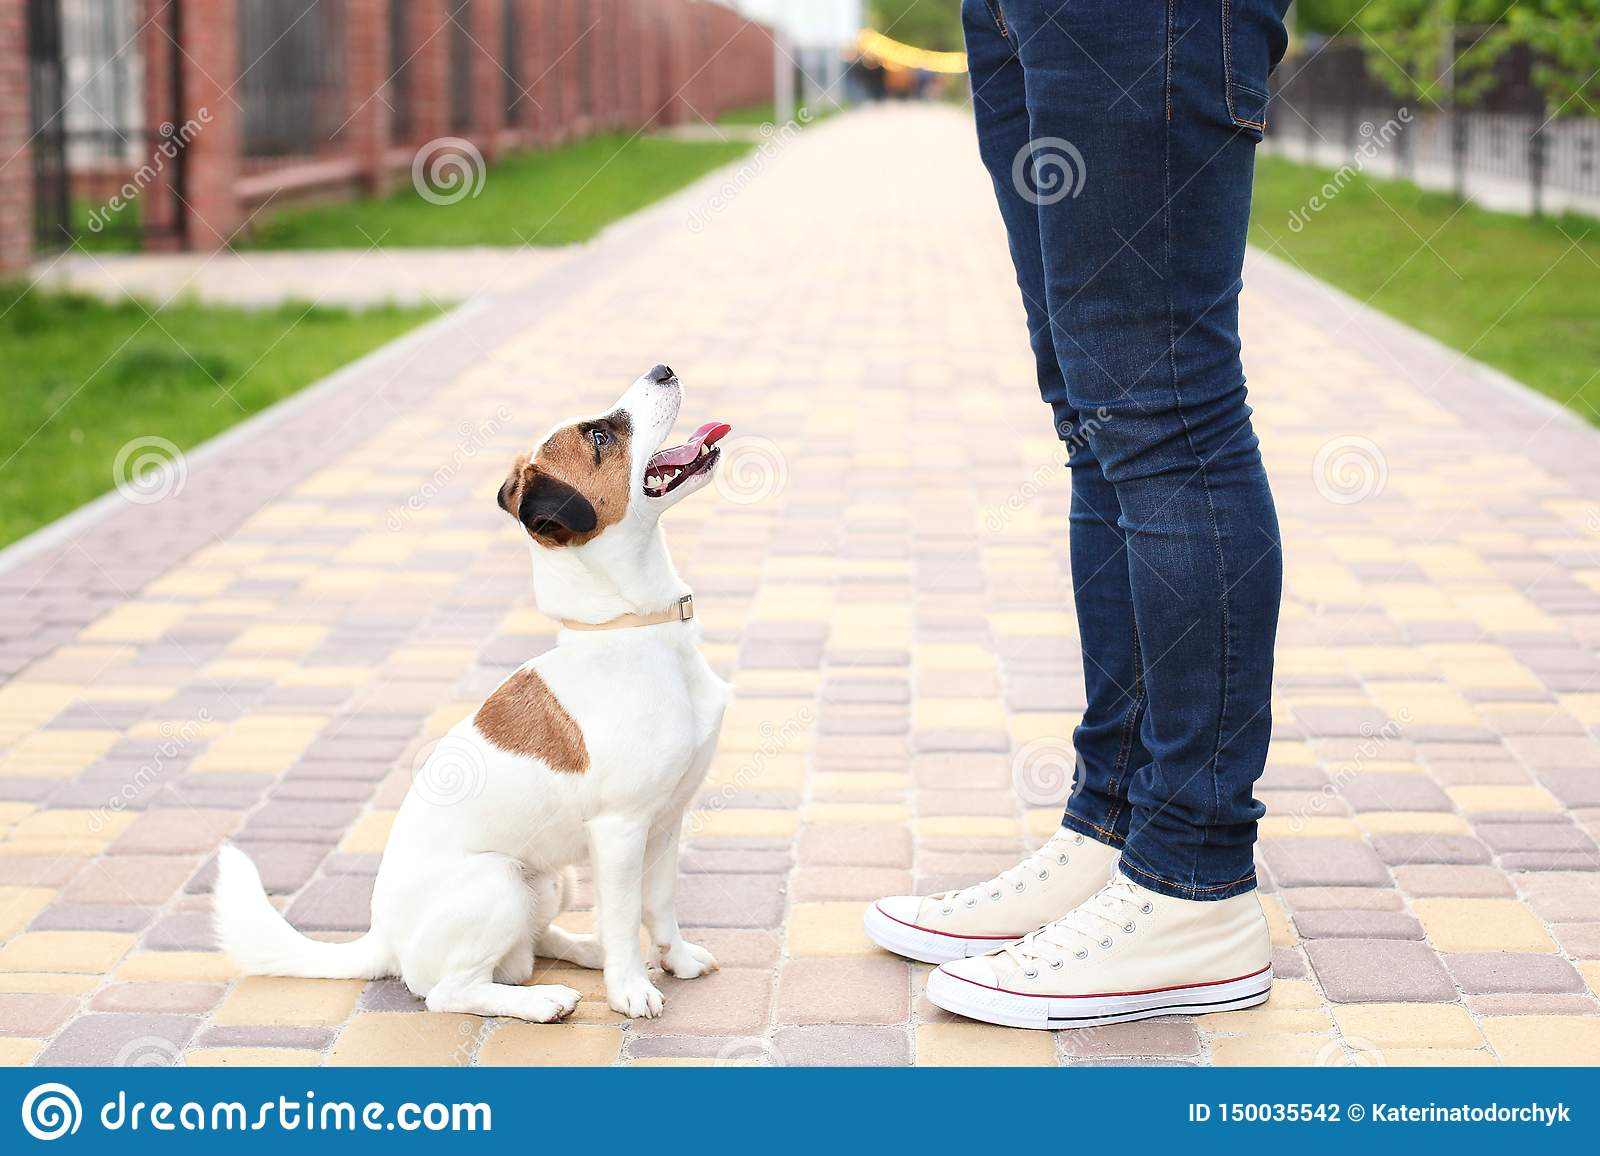 Dog and owner Jack Russell Terrier in anticipation of a walk in the park, on the street, patient and obedient. Education and train